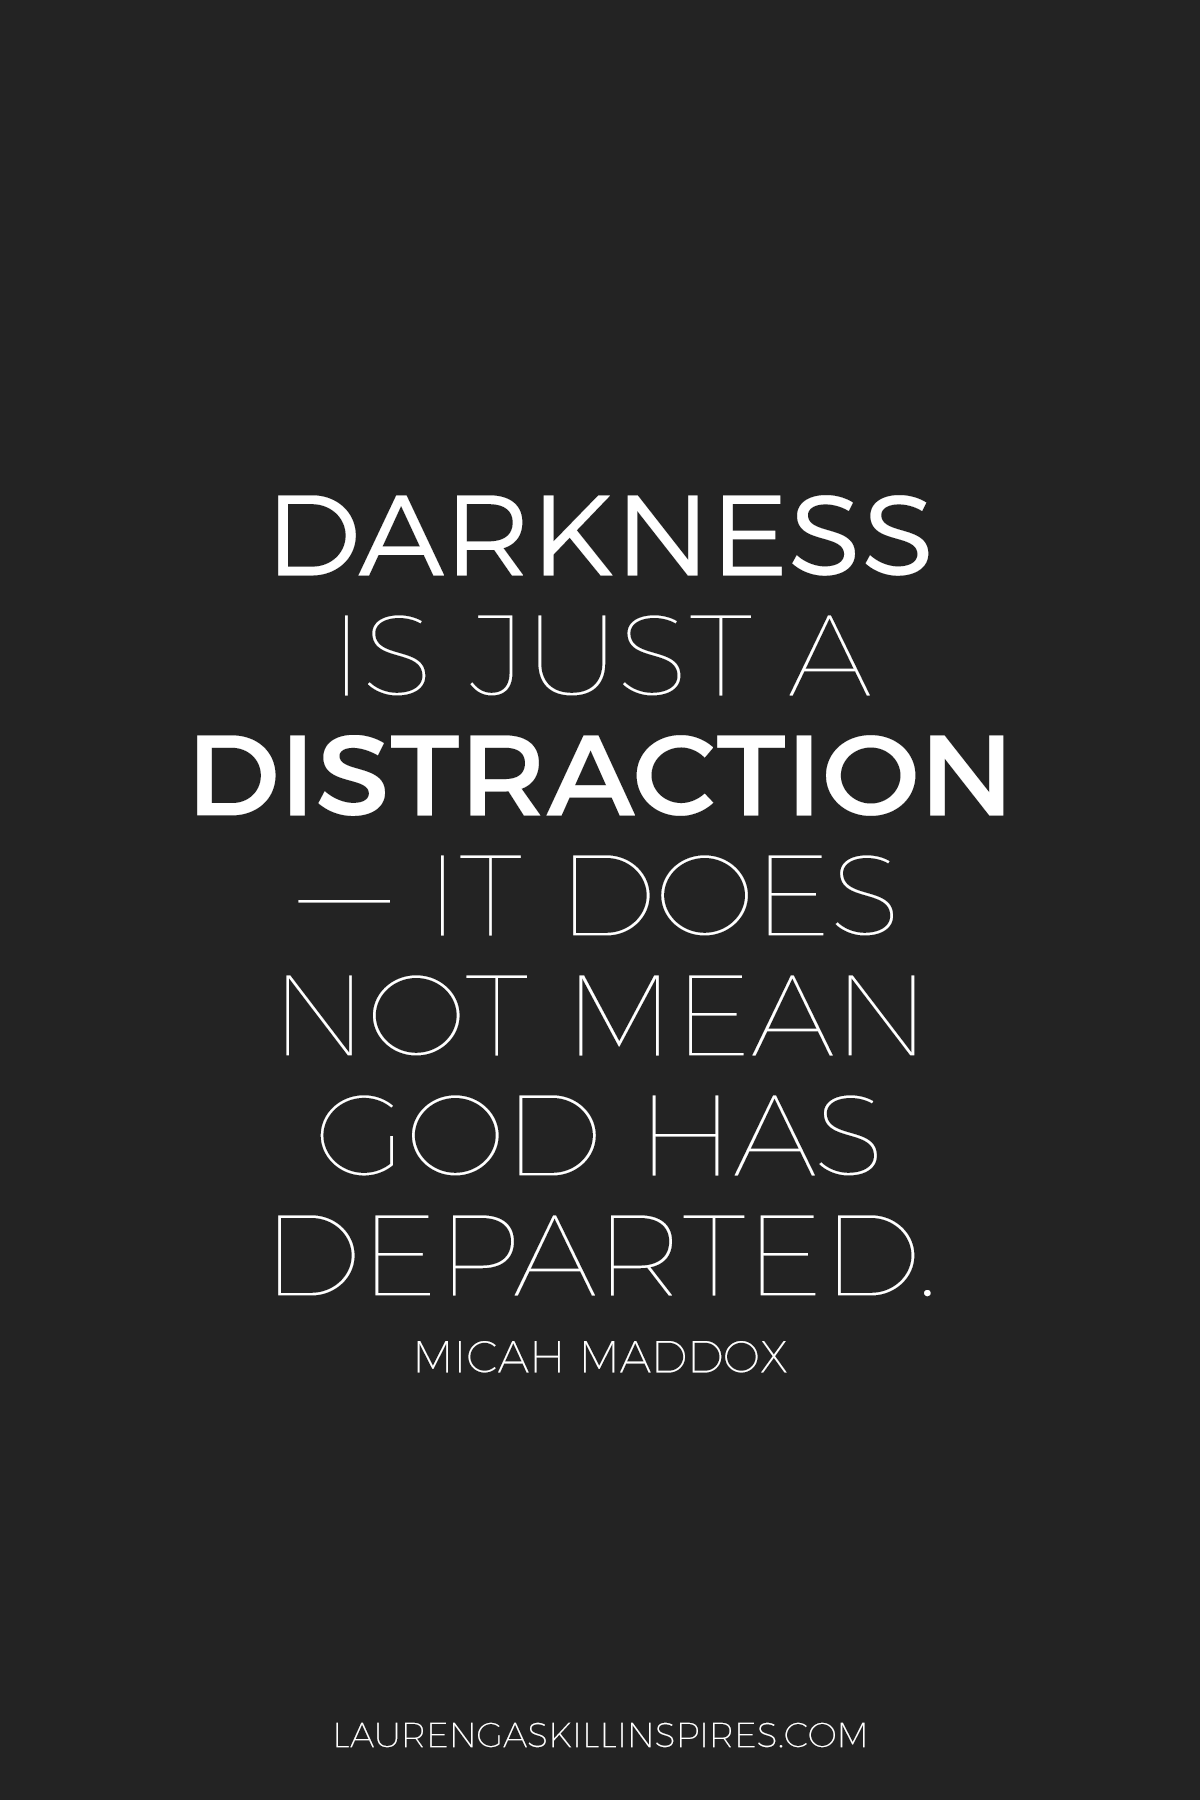 Darkness is just a distraction.